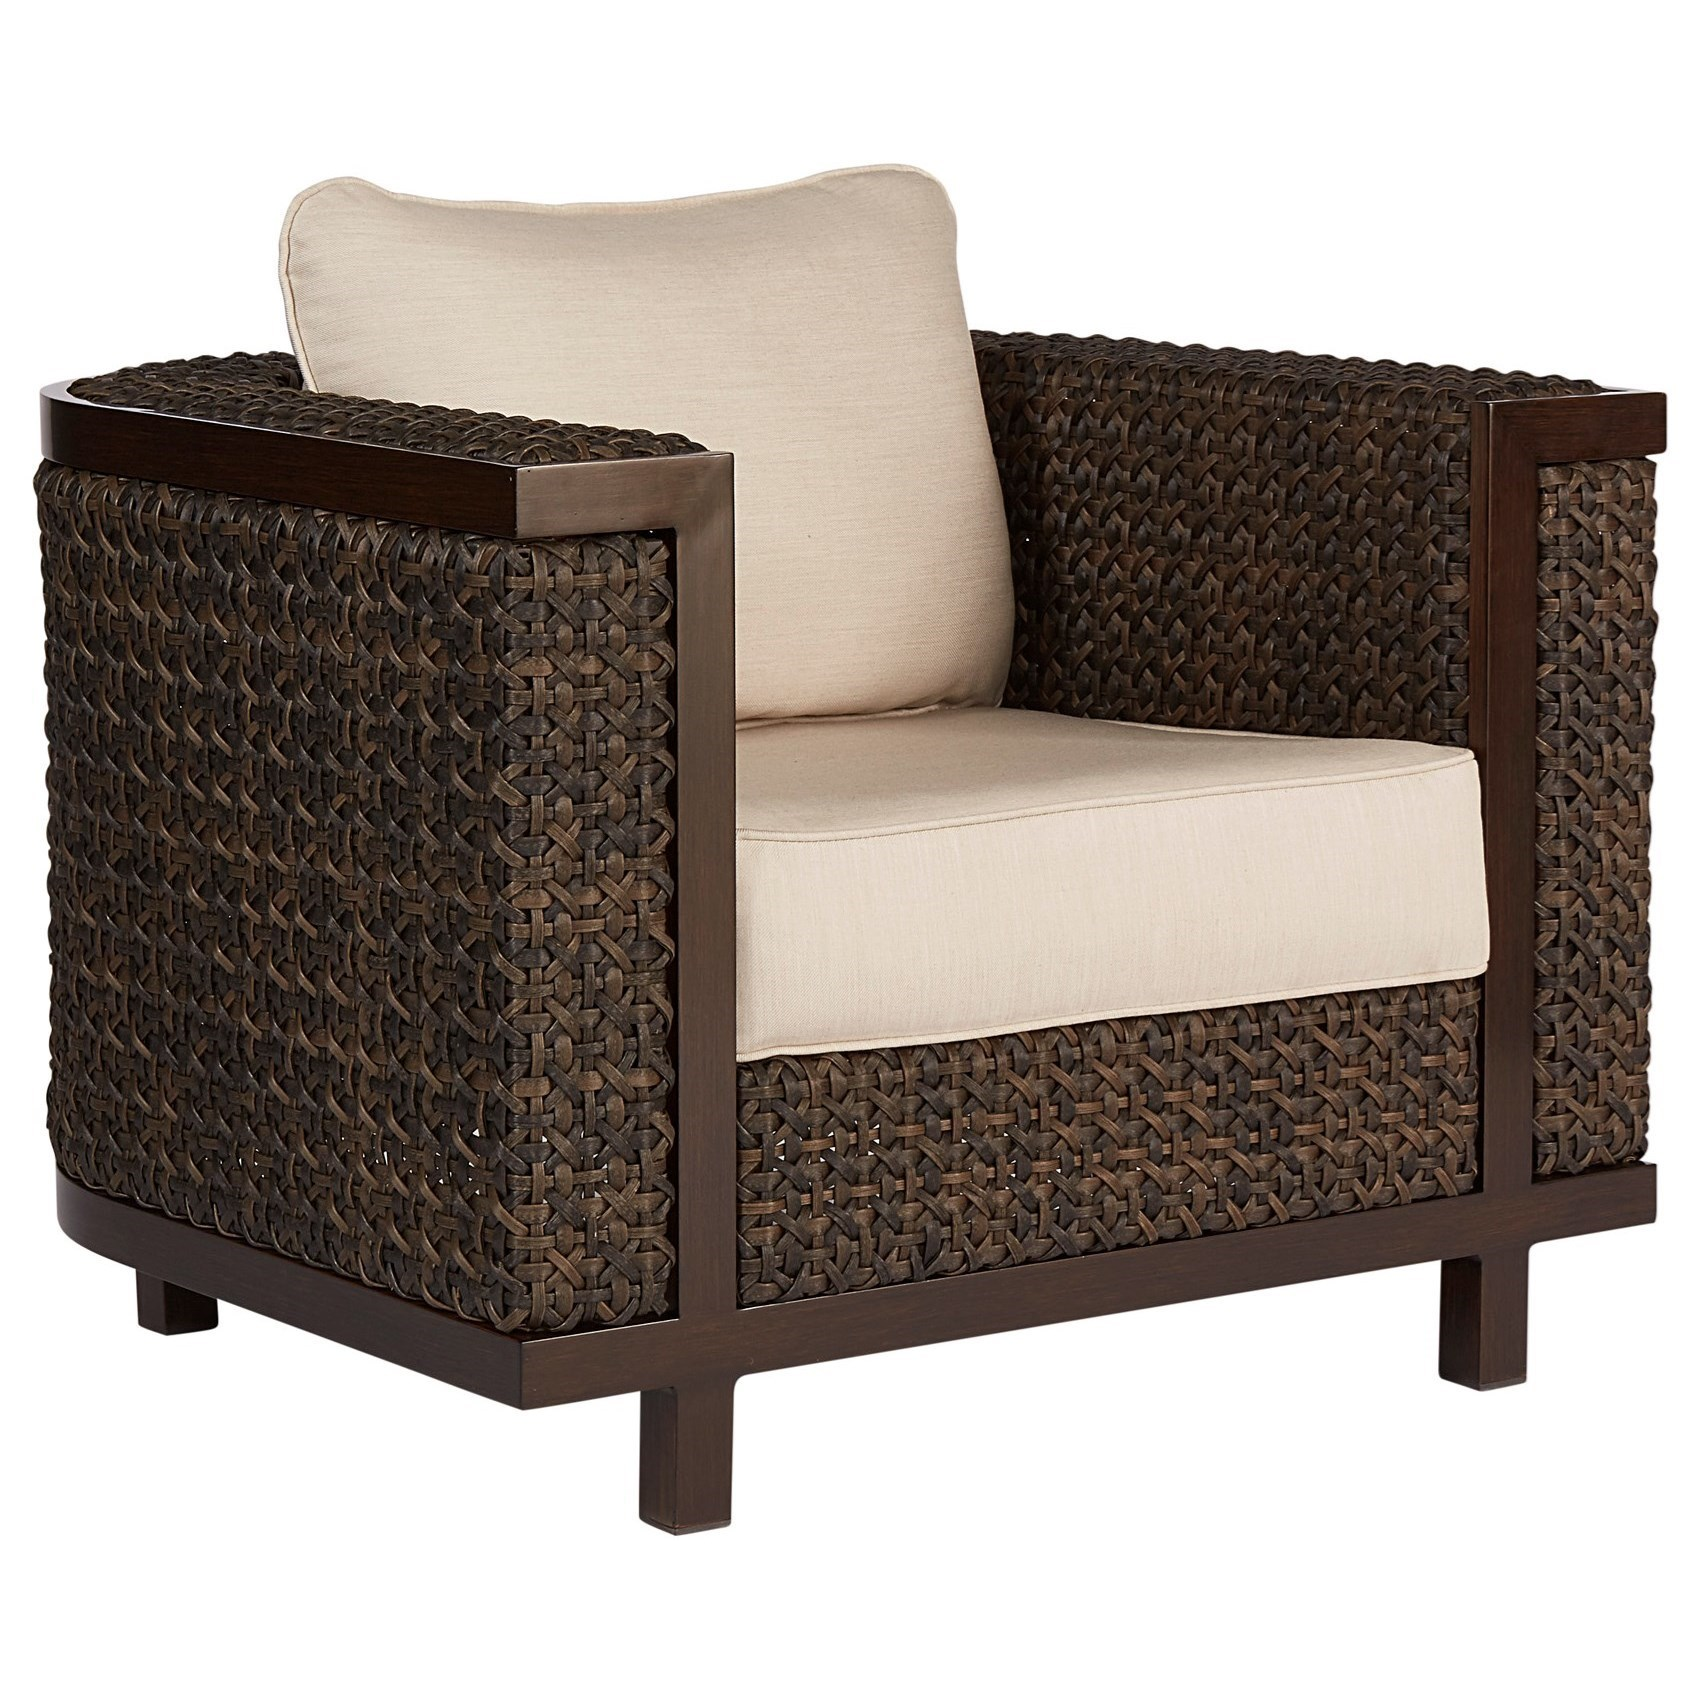 A.R.T. Furniture Inc Epicenters OutdoorBrentwood Wicker Club Chair ...